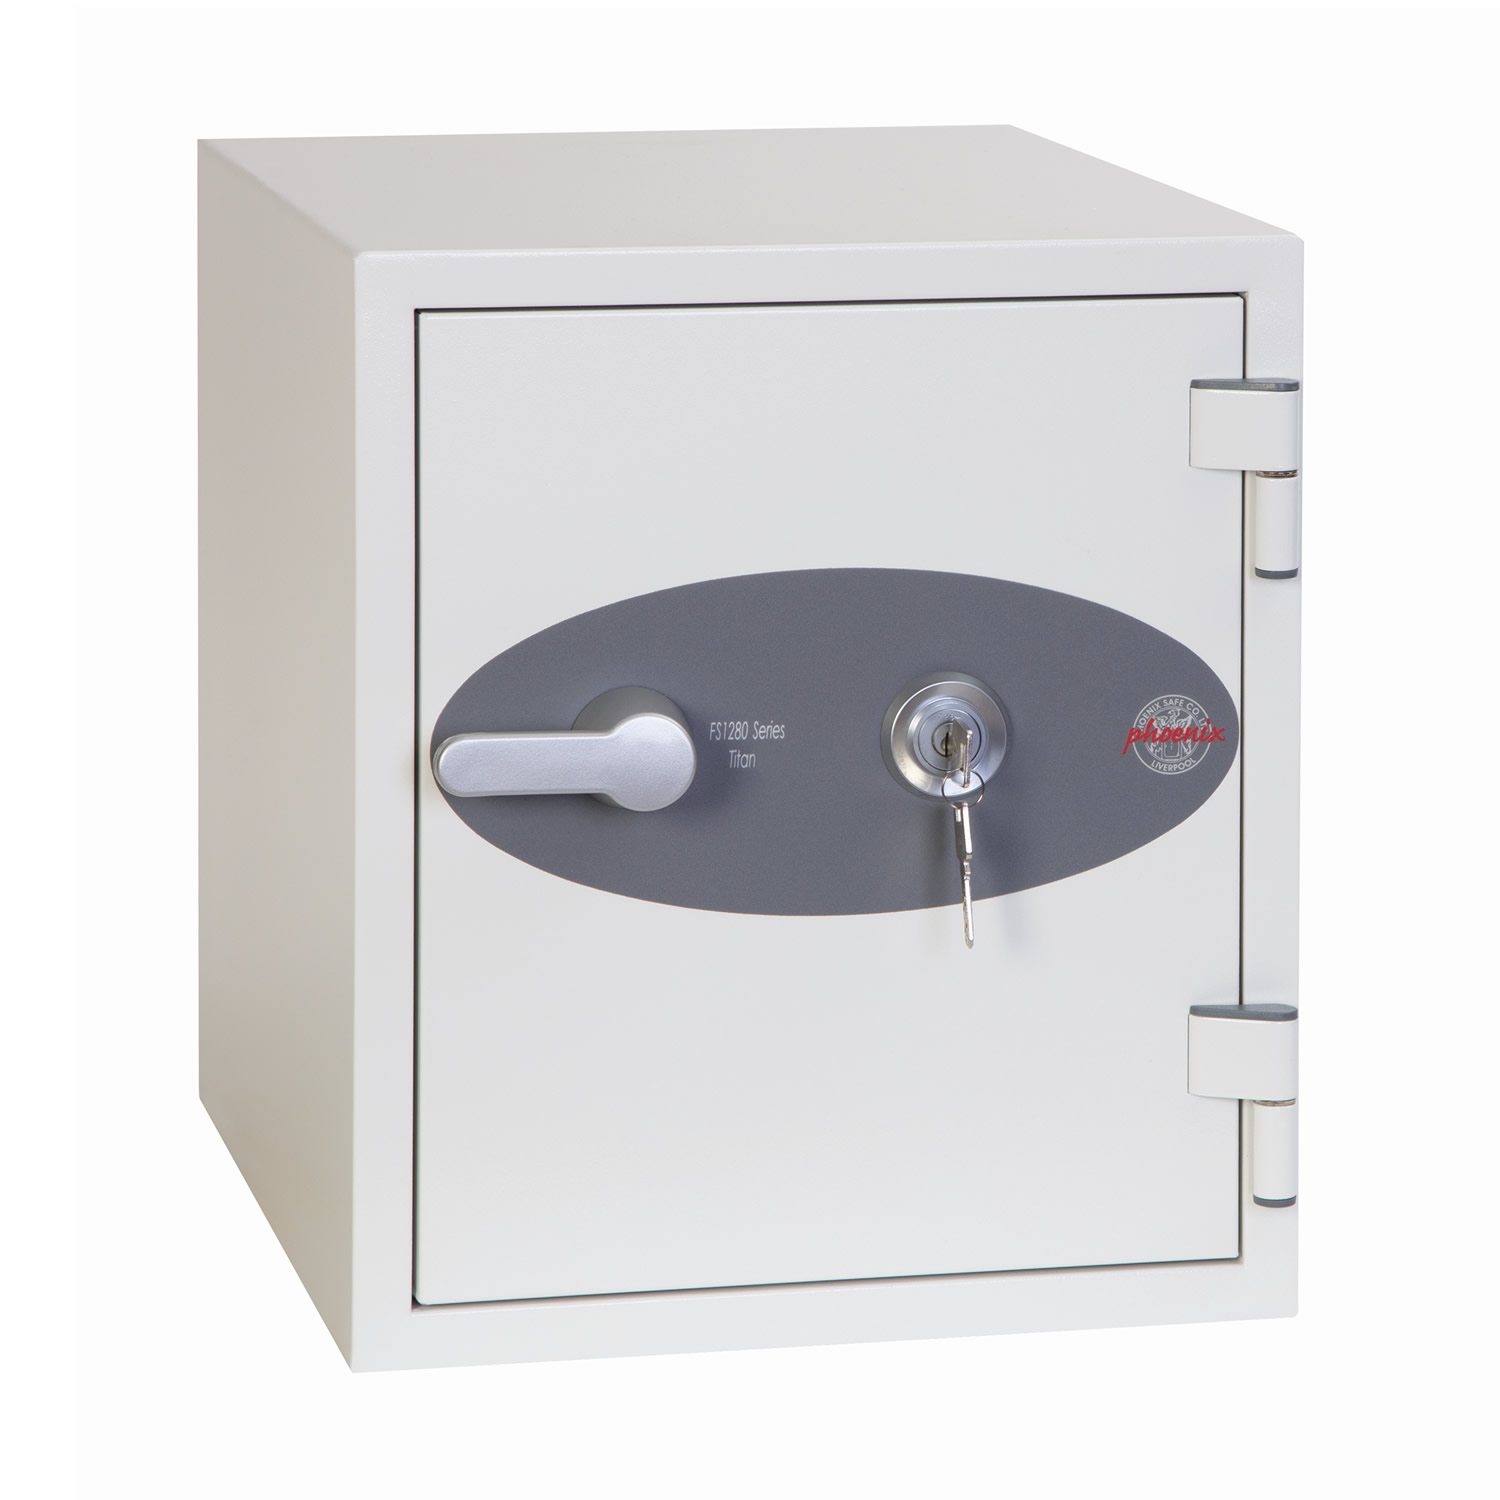 Phoenix Titan 1282 - Fire and Security Safe with Key Lock